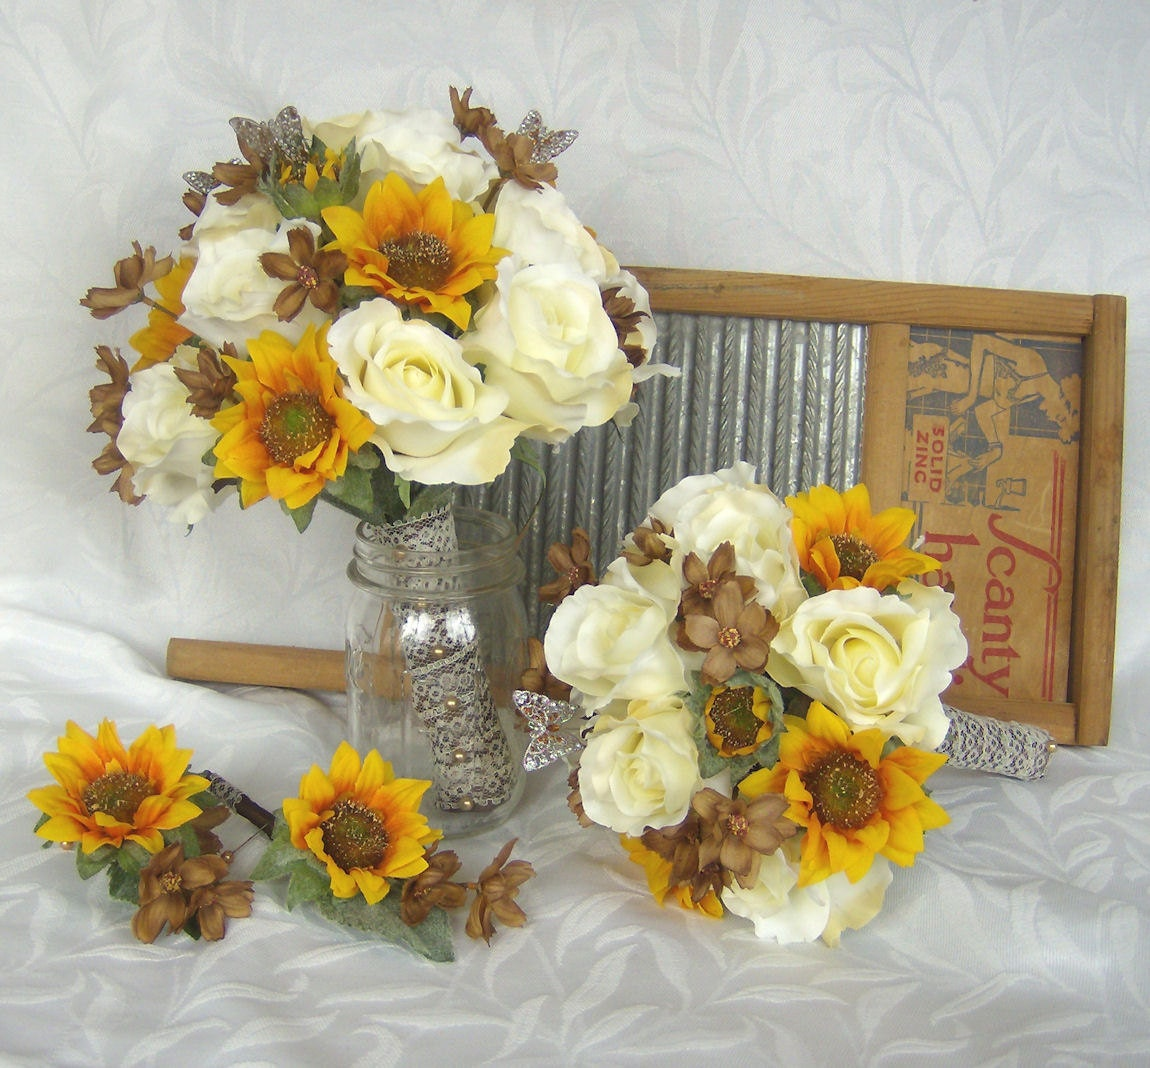 Bouquets with sunflowers for weddings images